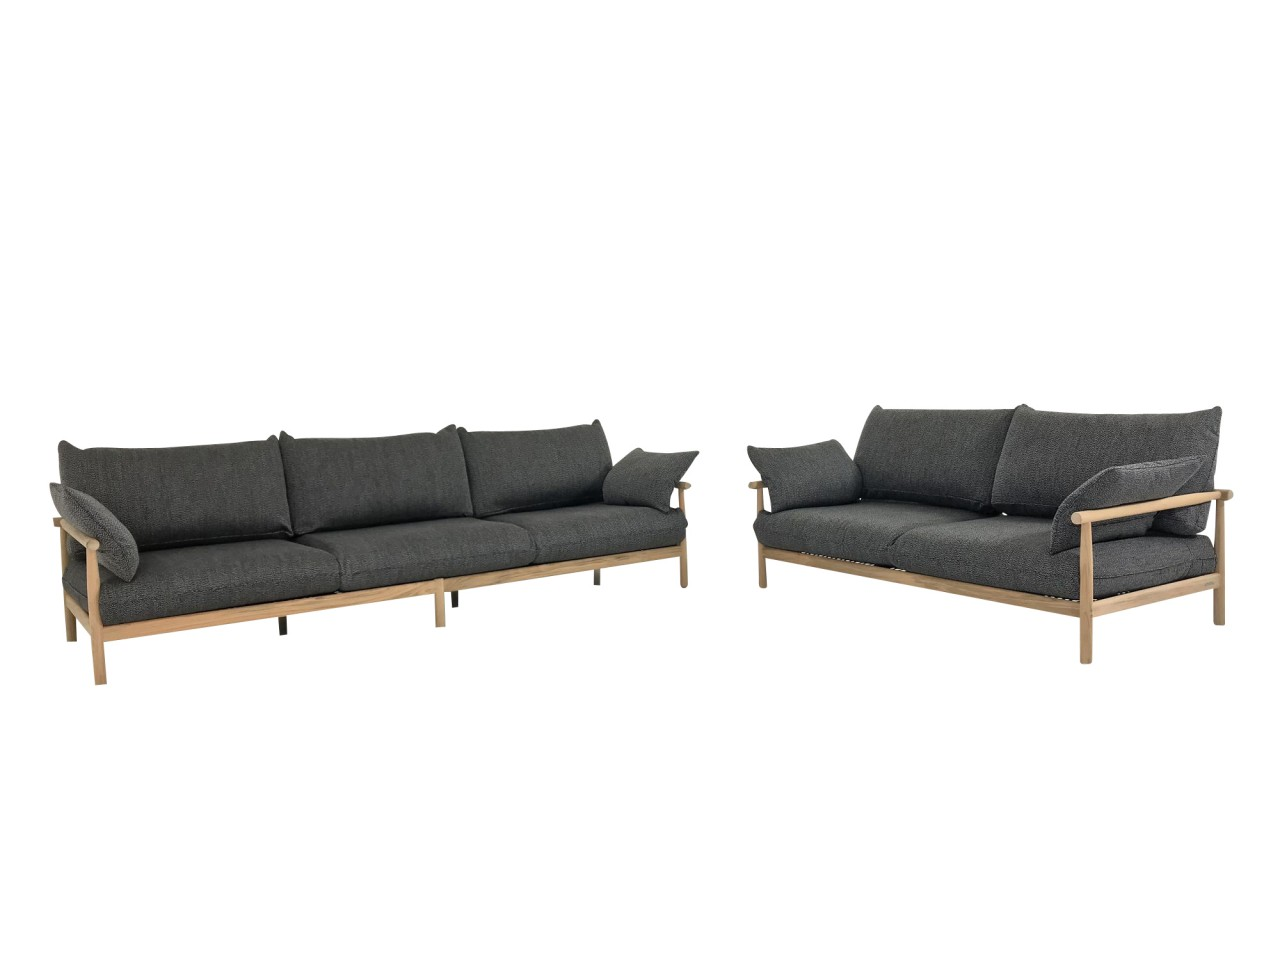 dedon tibbo sofa 3 und sofa 2 f r garten und terrasse in teak mit sitzkissen in stoff twello. Black Bedroom Furniture Sets. Home Design Ideas